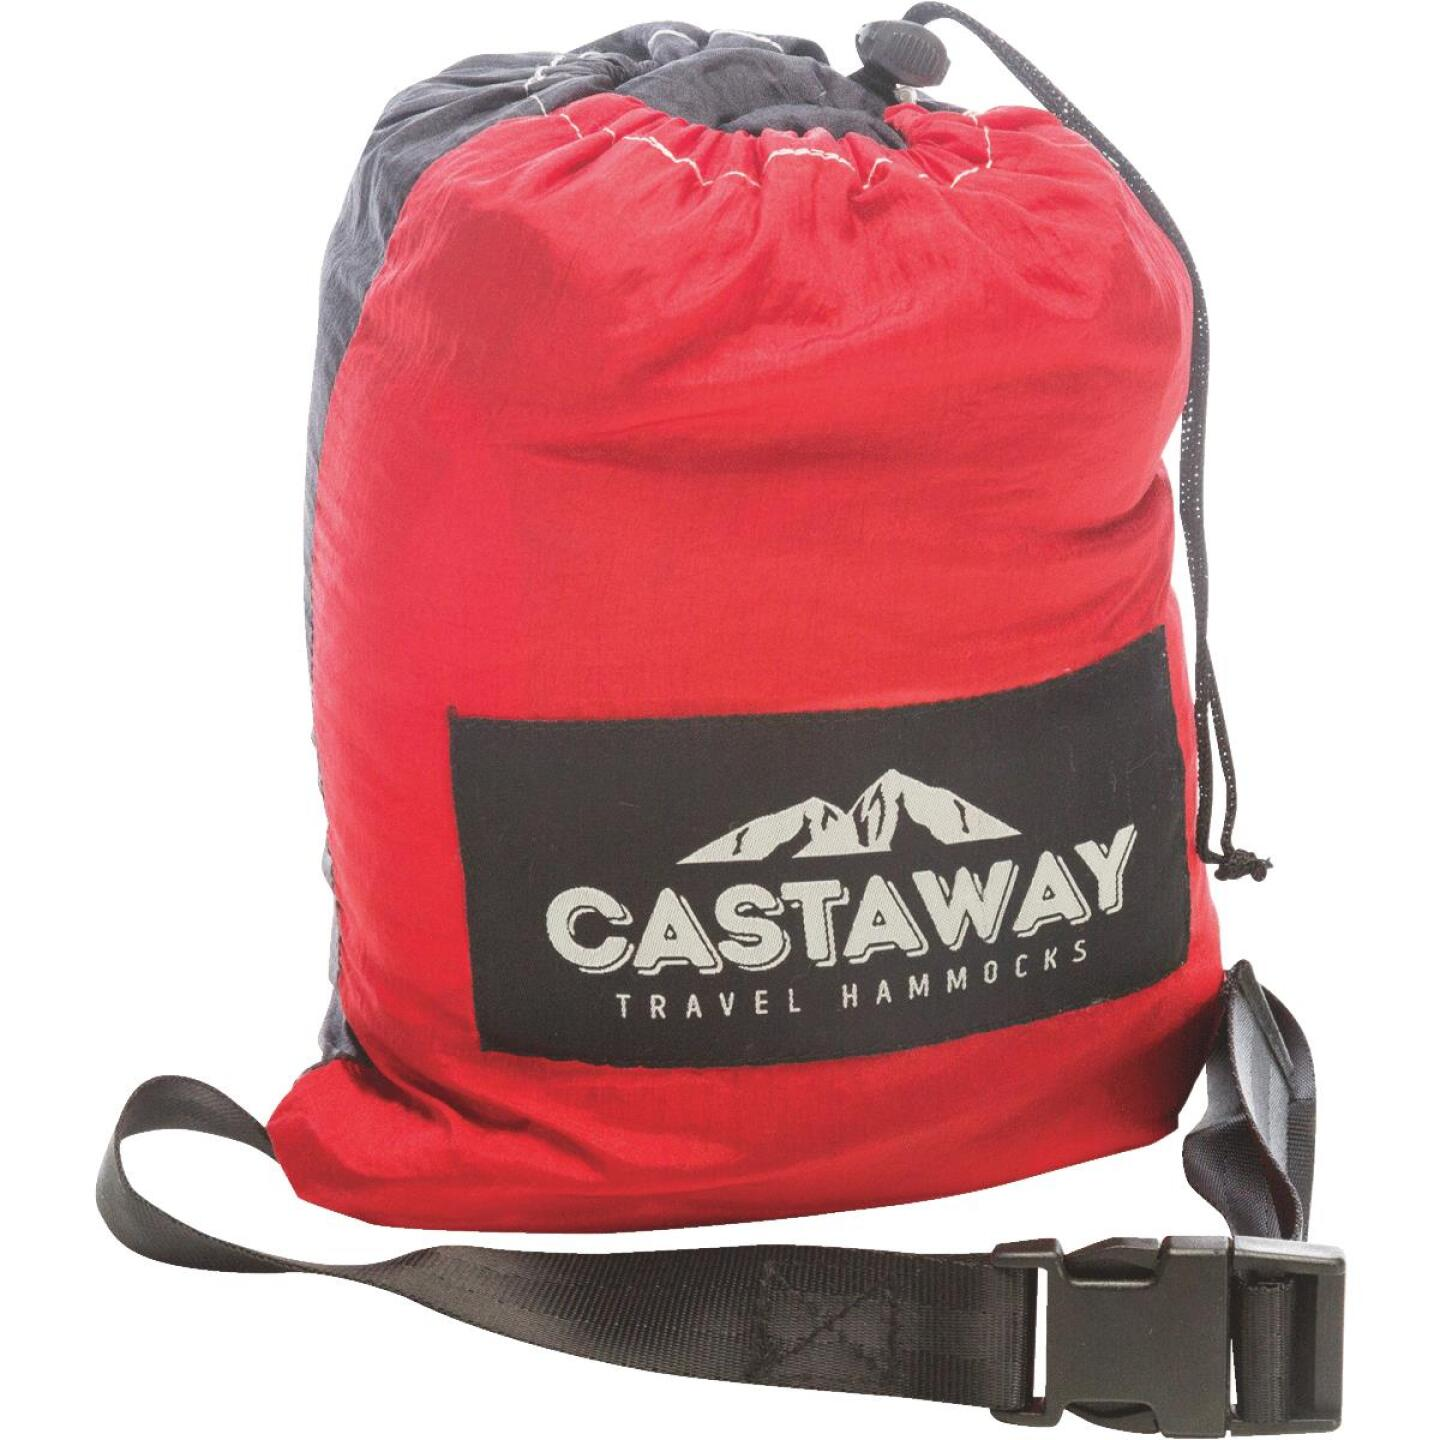 Castaway All-In-One Nylon Red Travel Hammock Image 2